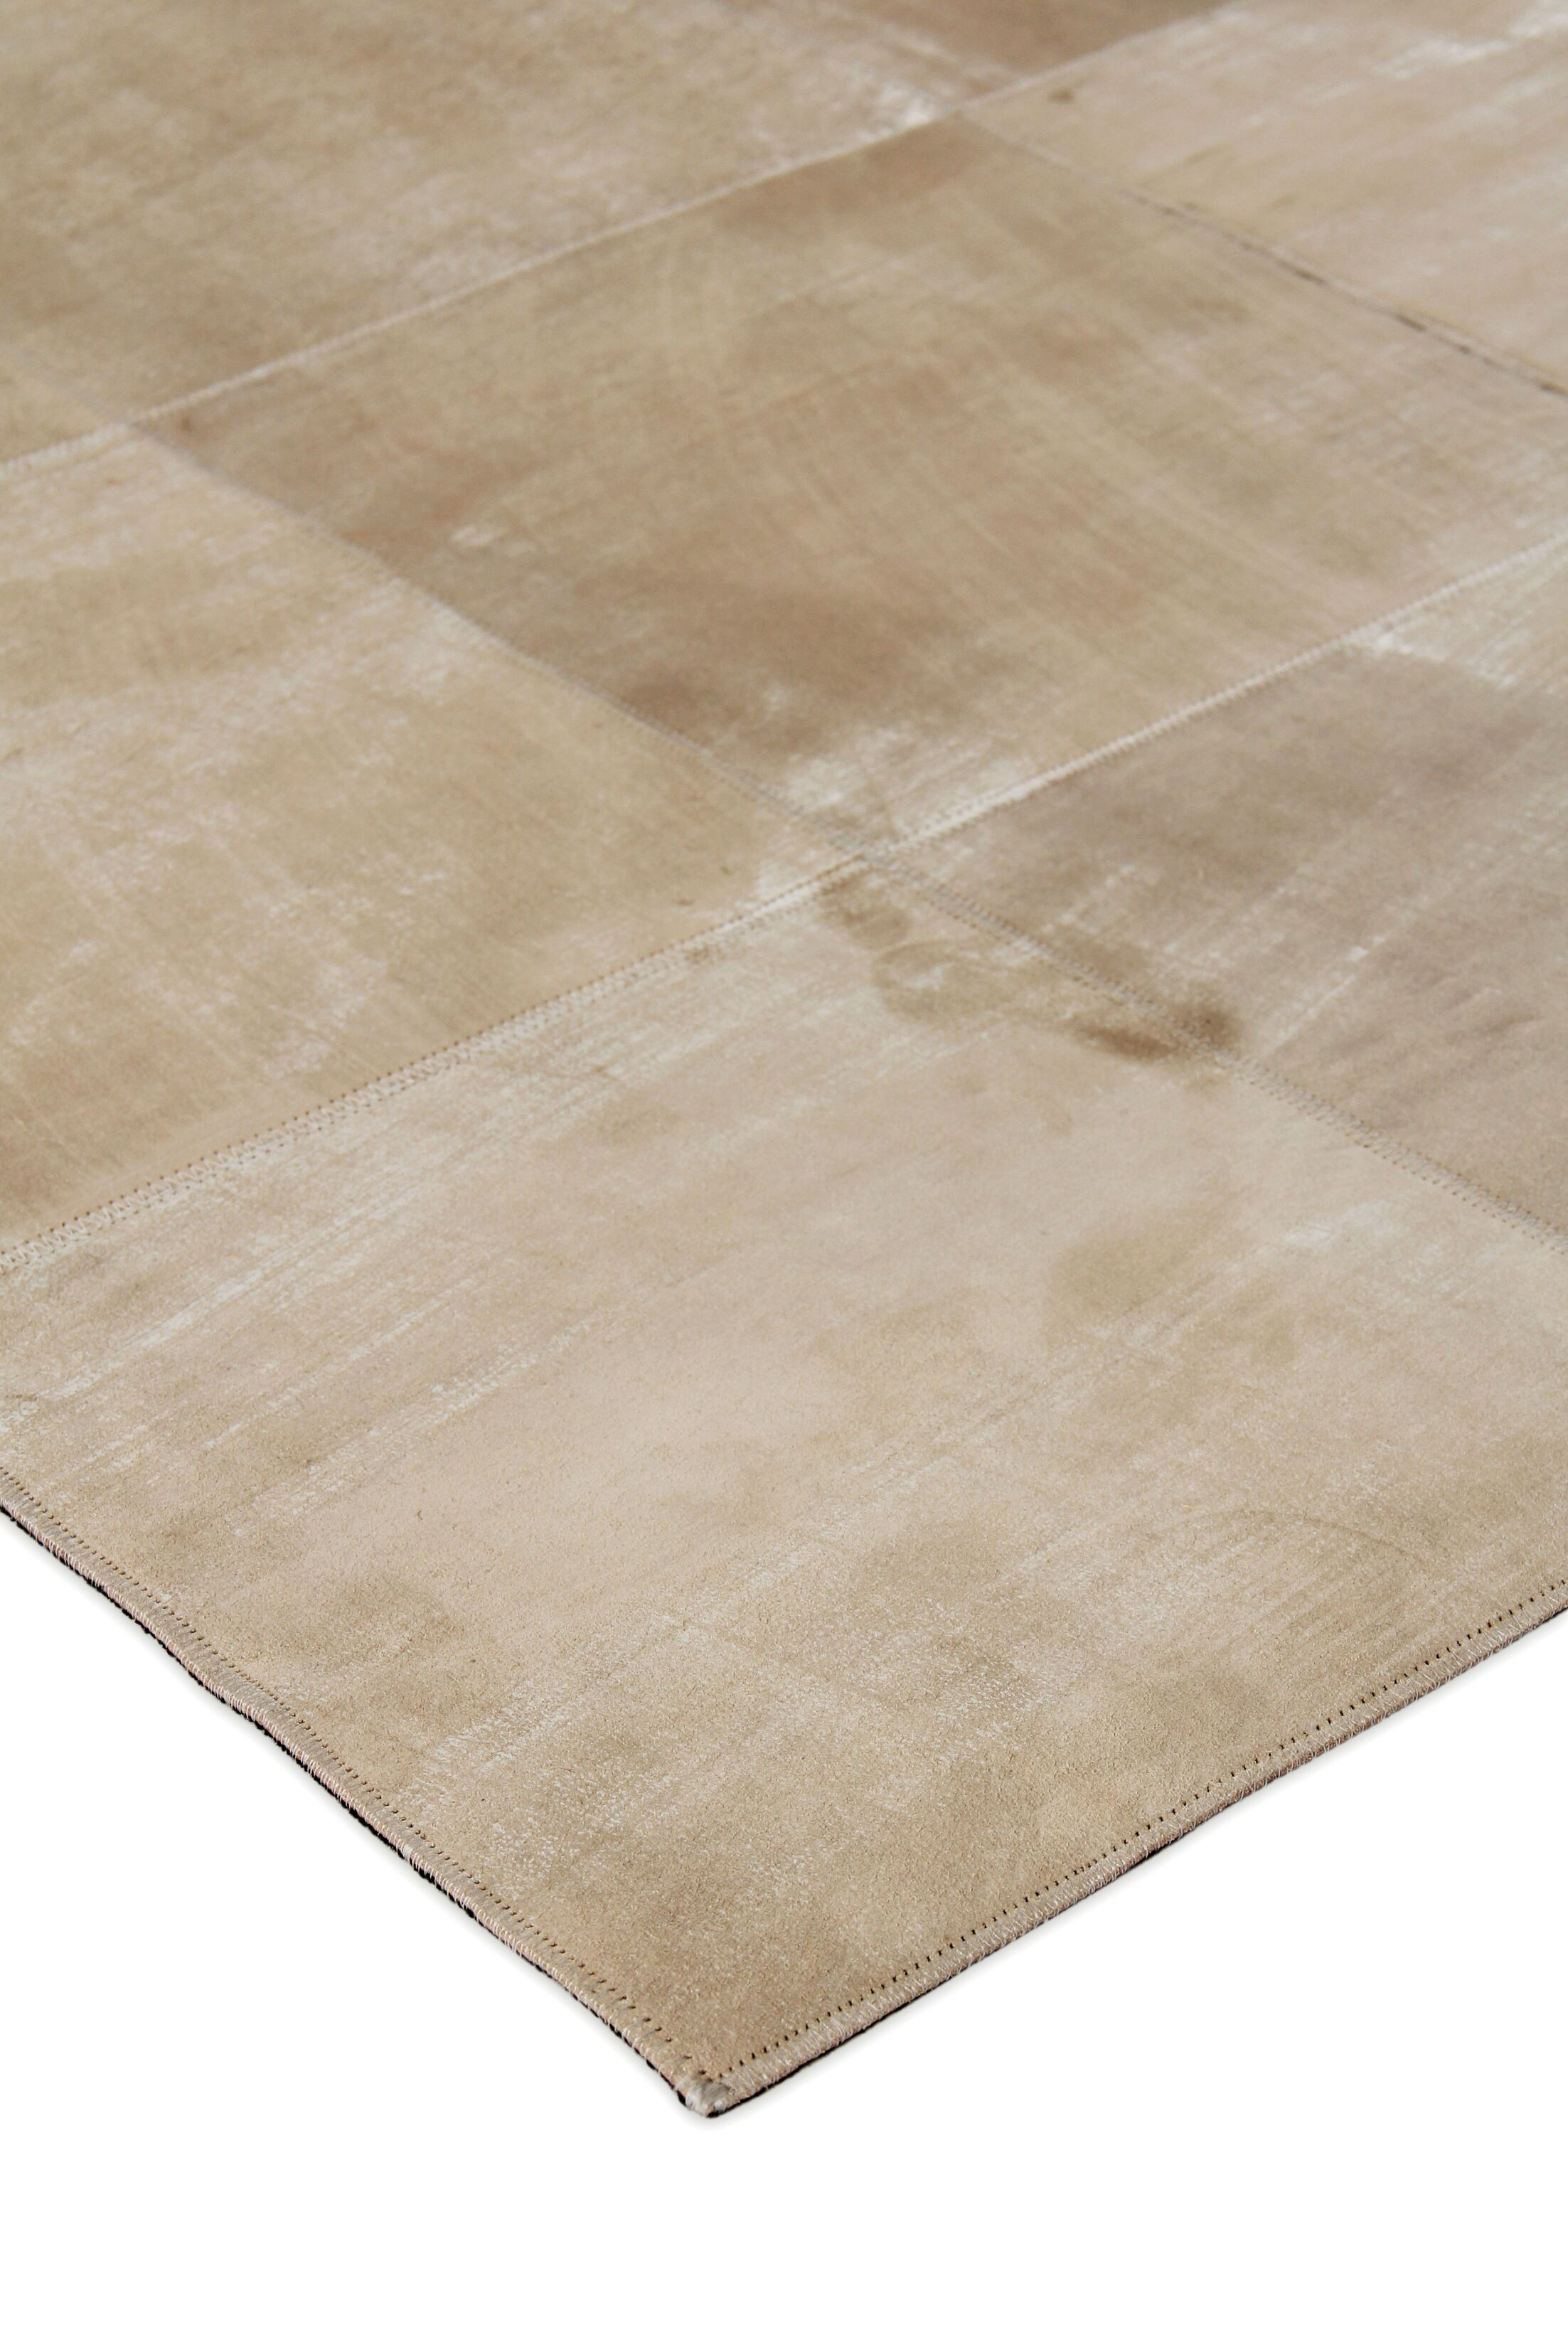 One-of-a-Kind Capri Hand-Woven Beige Area Rug Rug Size: Rectangle 9'6